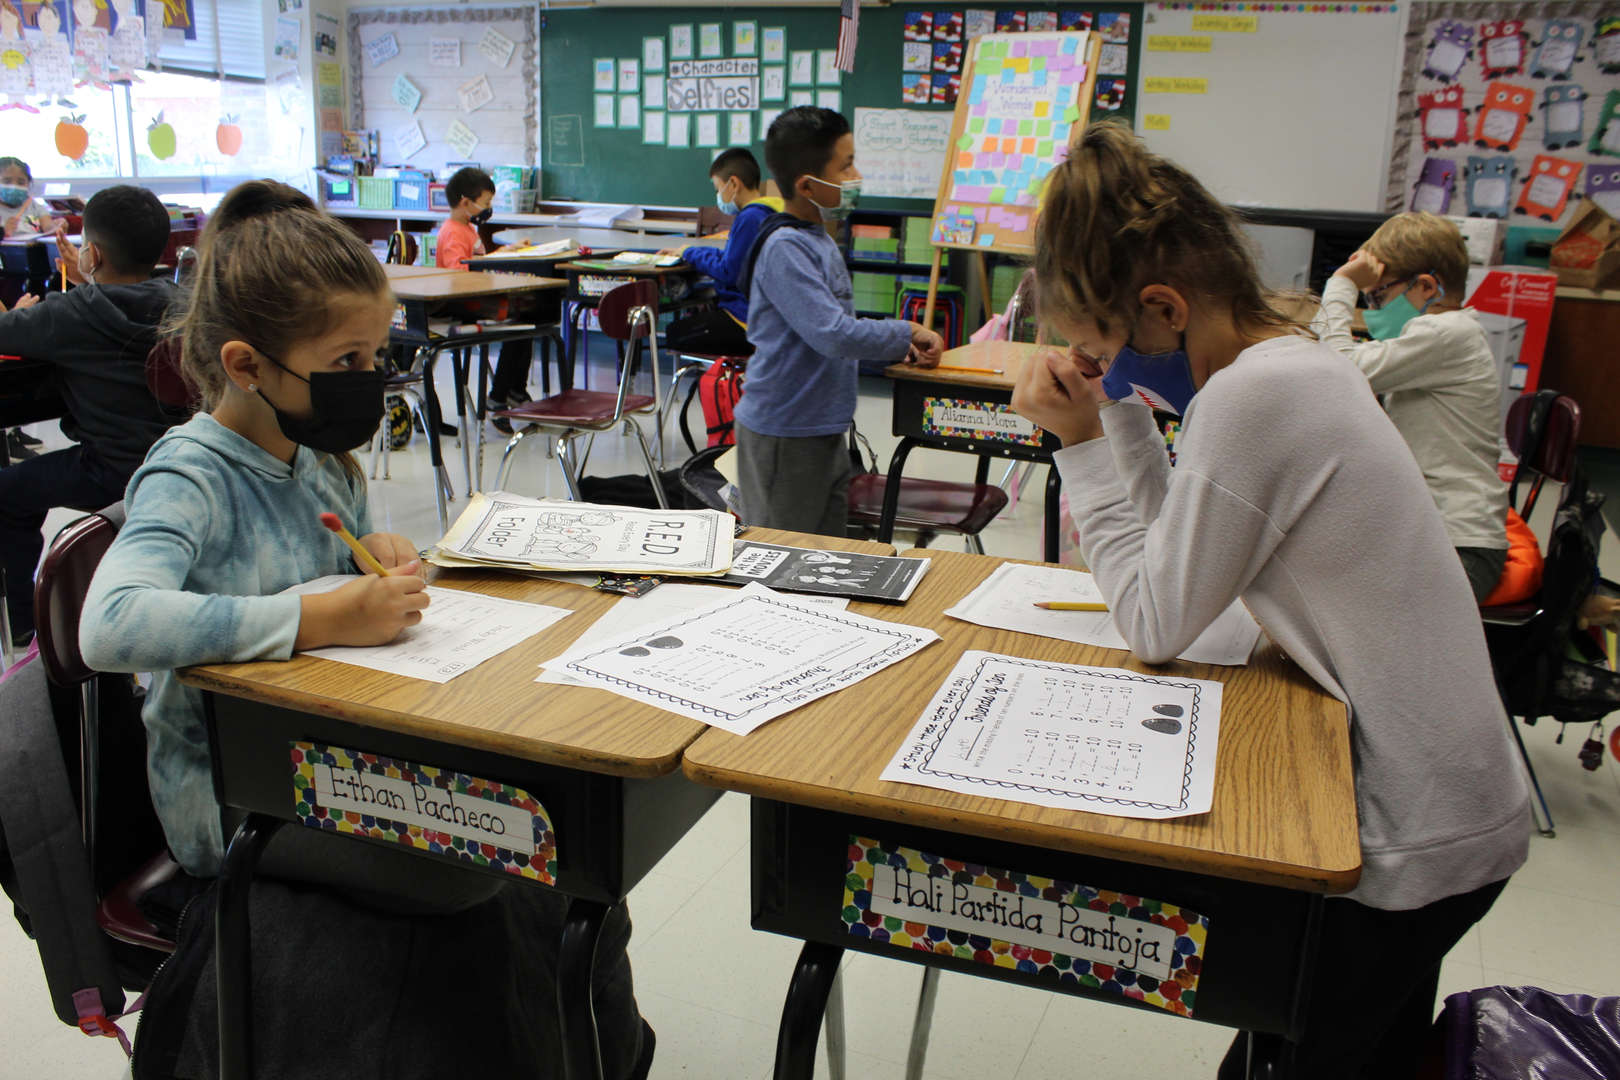 Two girls seated at desks working on homework